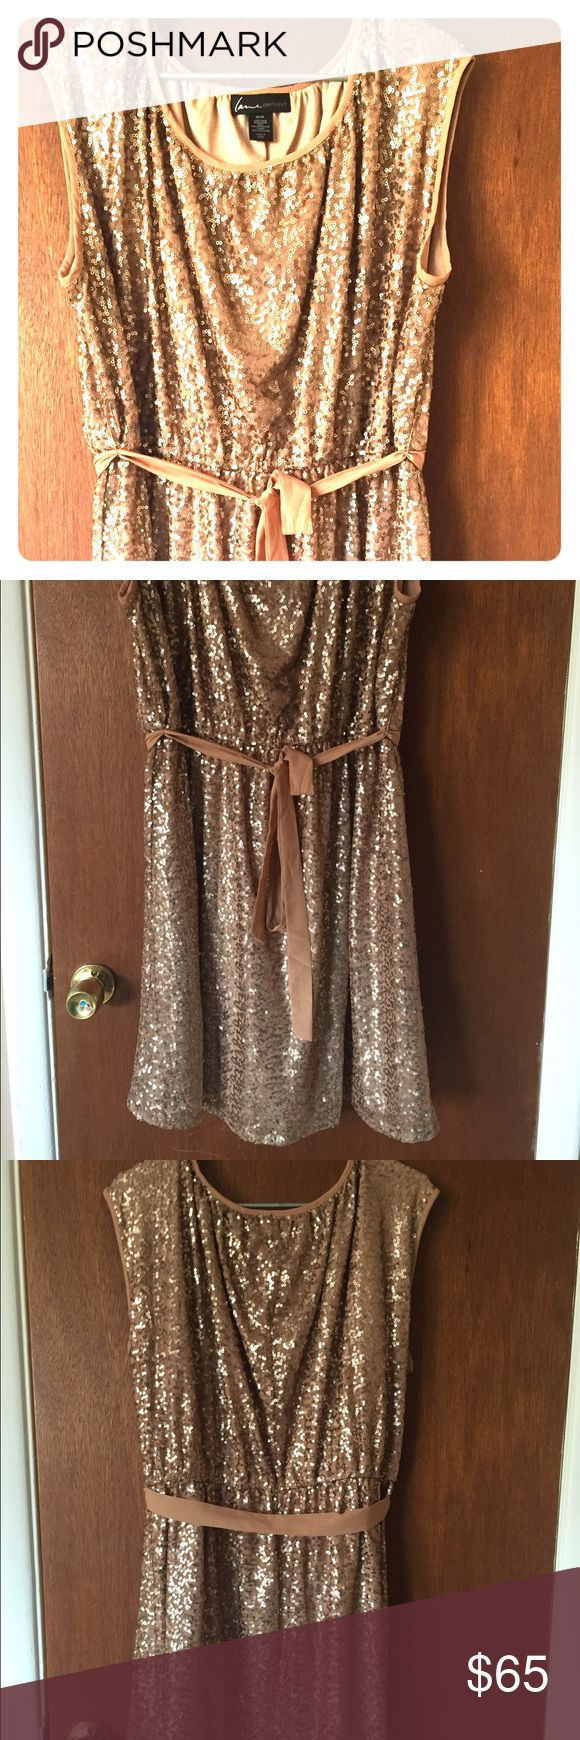 Gold glitter Dress Perfect for a party! Worn once. Size 18/20 perfect condition. Lane Bryant Dresses